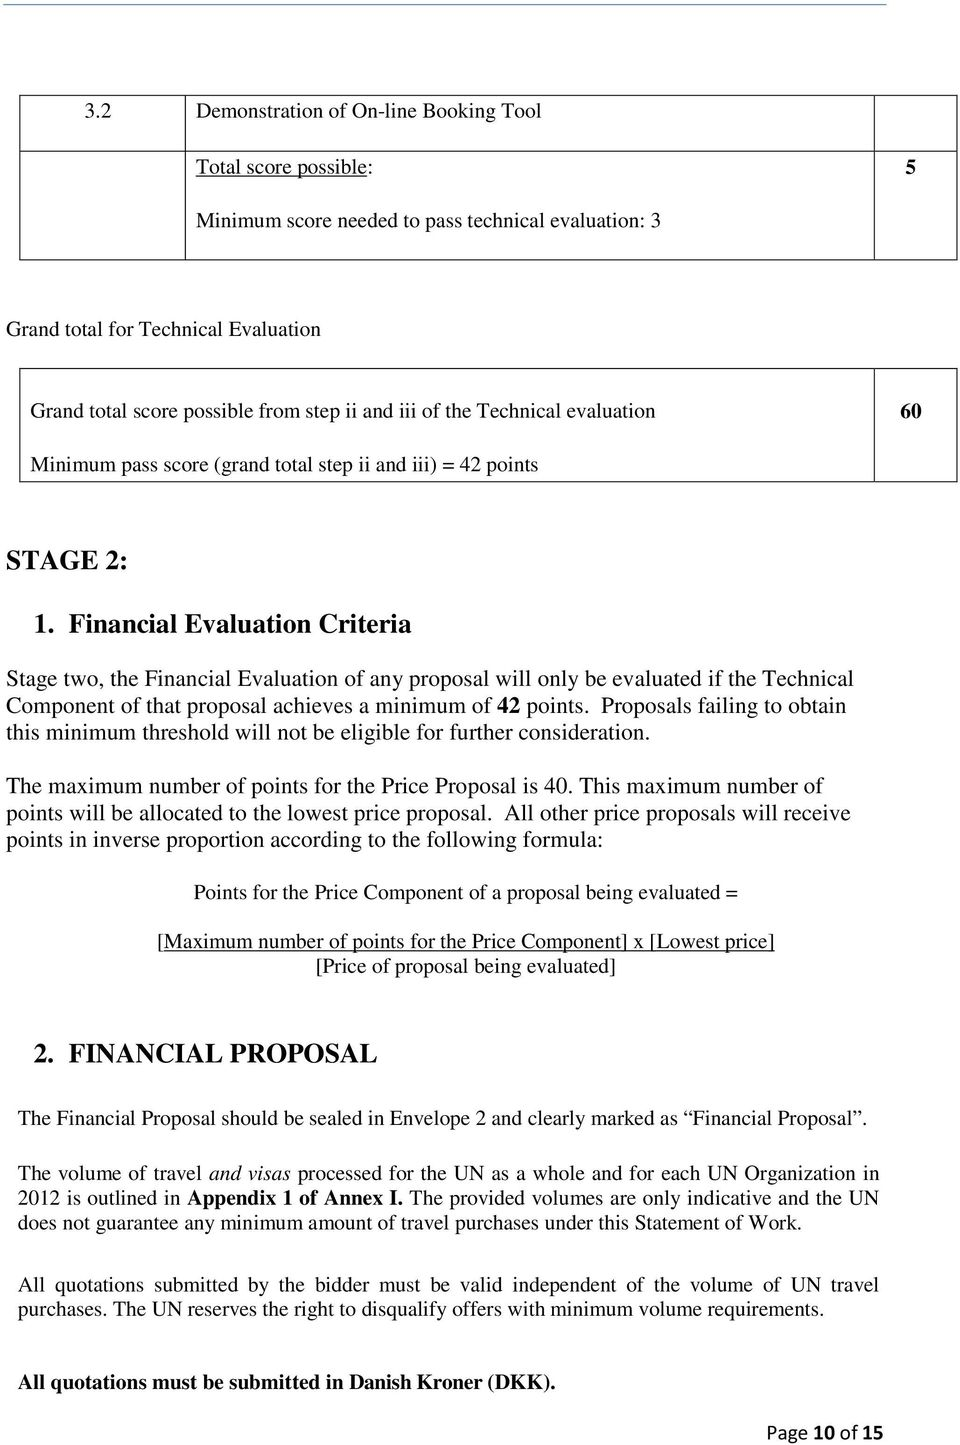 Financial Evaluation Criteria Stage two, the Financial Evaluation of any proposal will only be evaluated if the Technical Component of that proposal achieves a minimum of 42 points.